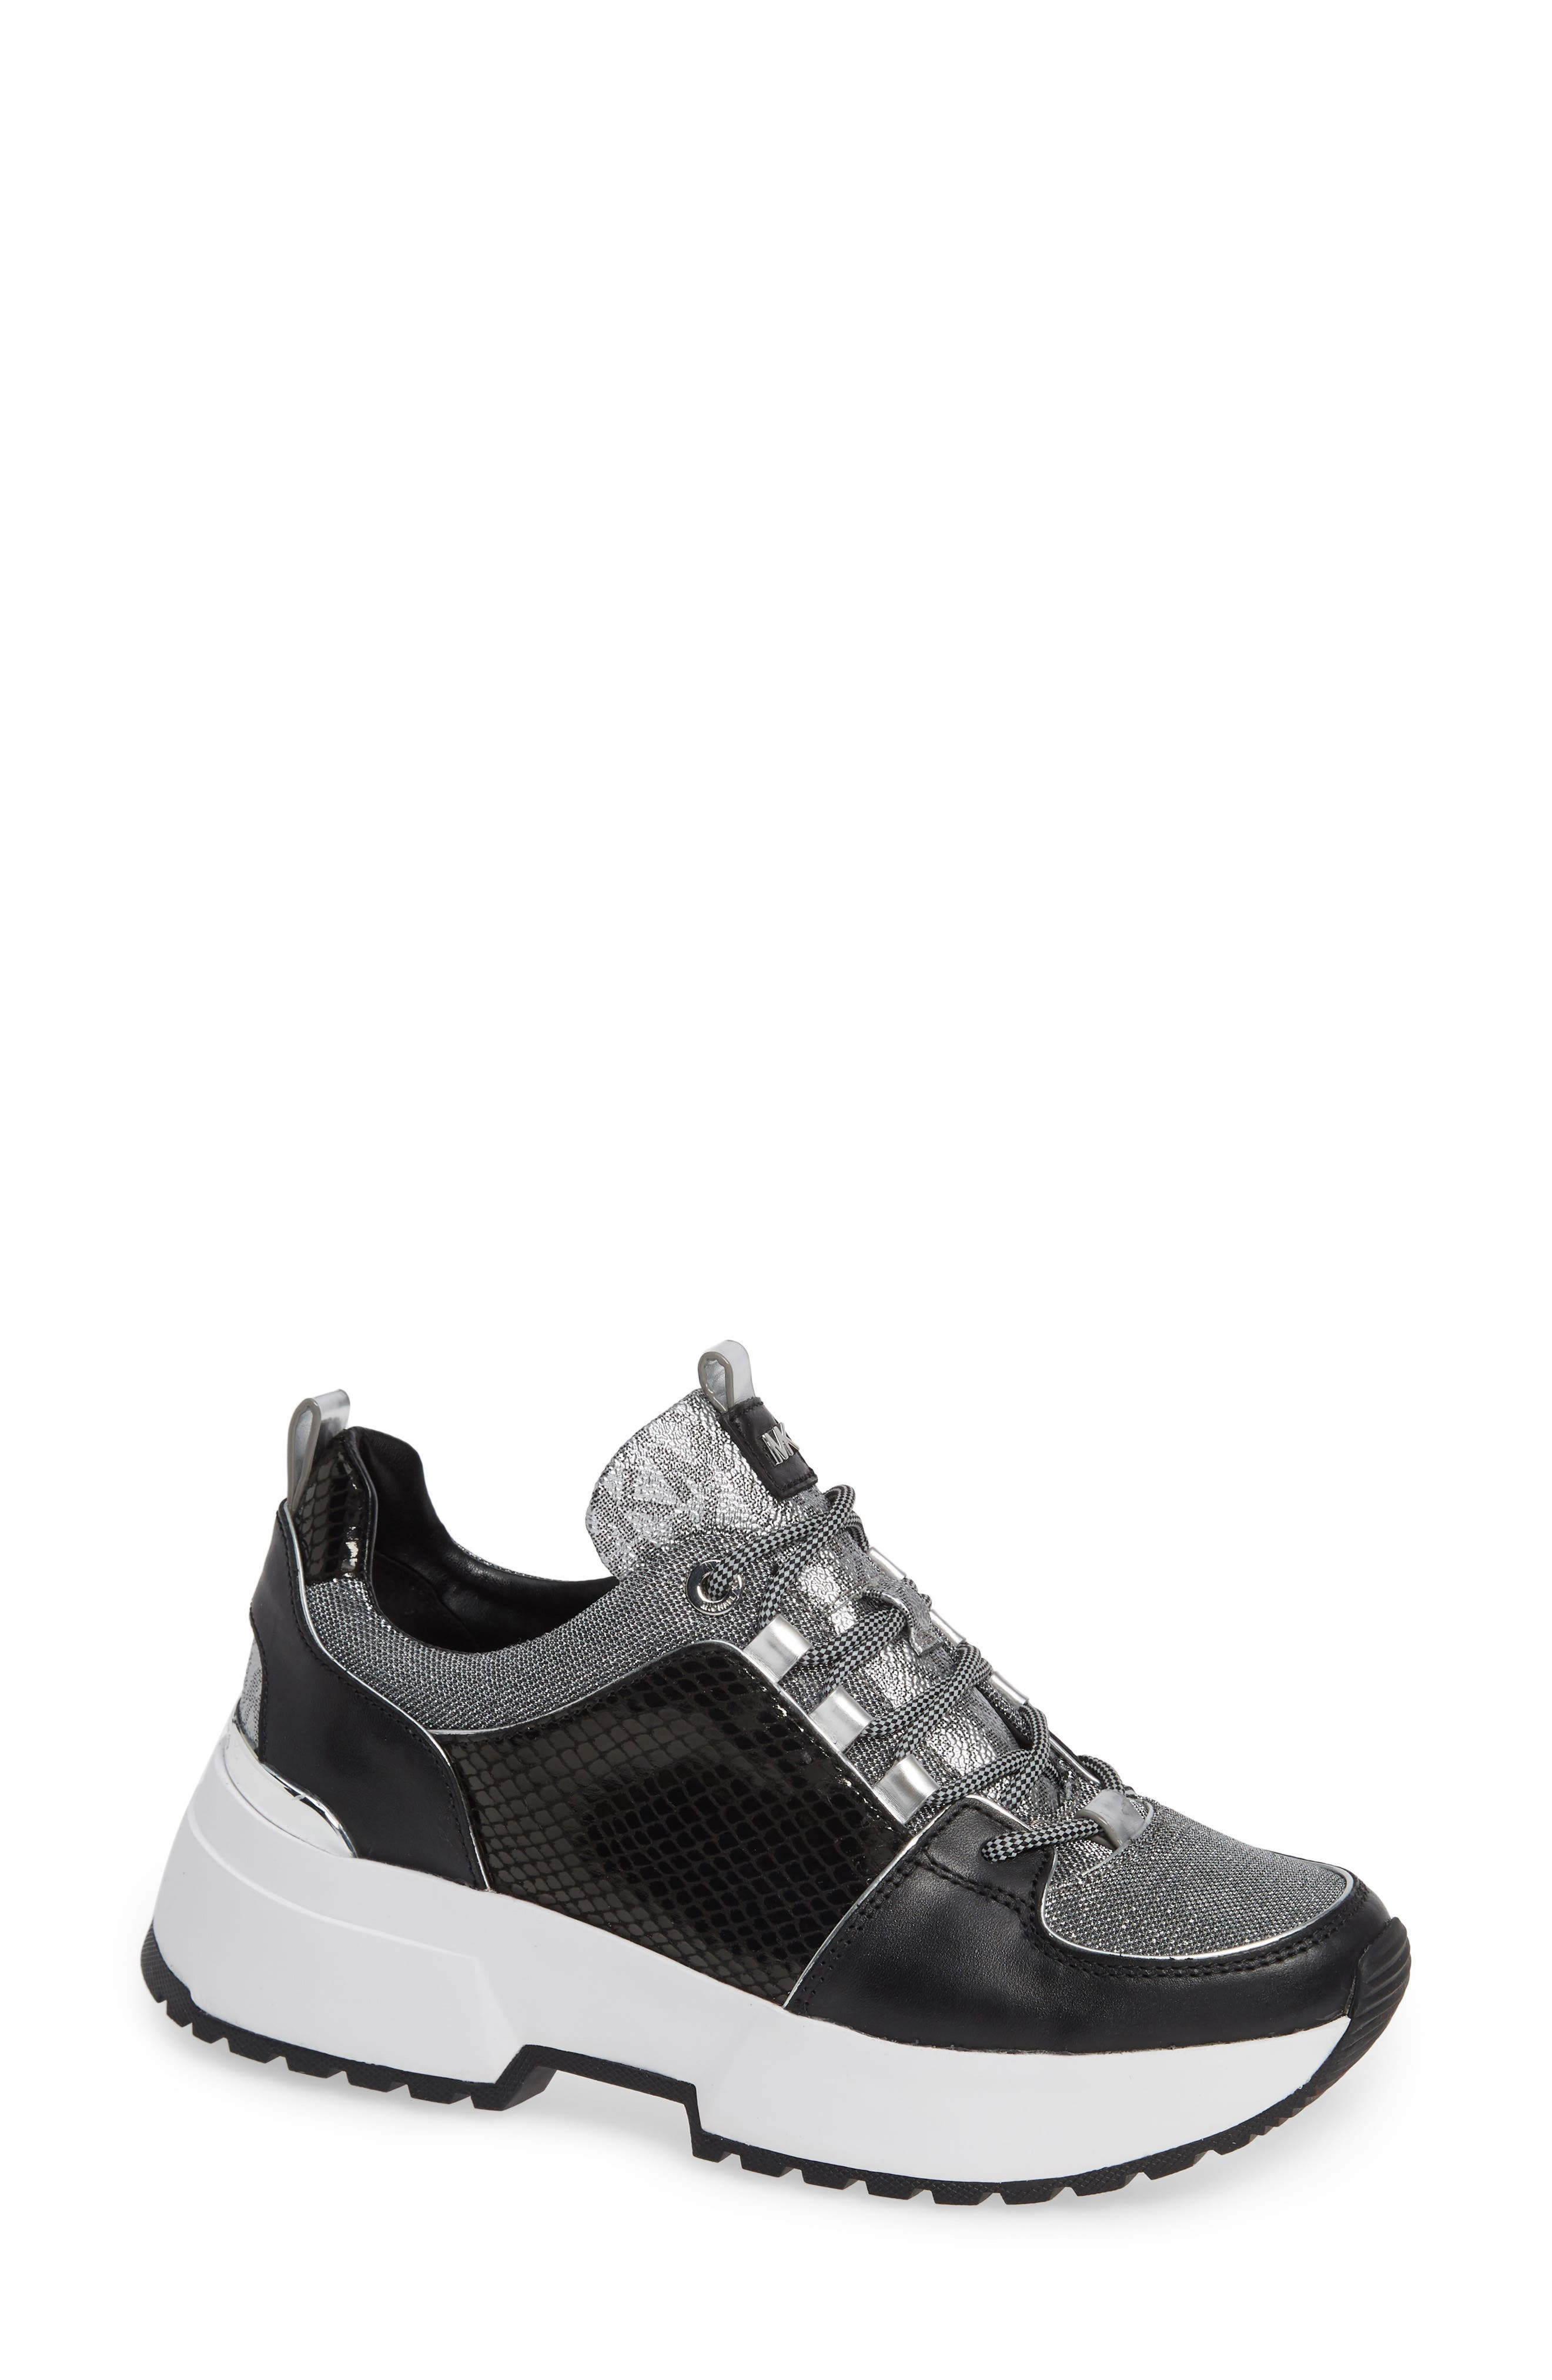 Women'S Cosmo Mixed Media Lace-Up Sneakers in Black/ Silver Multi